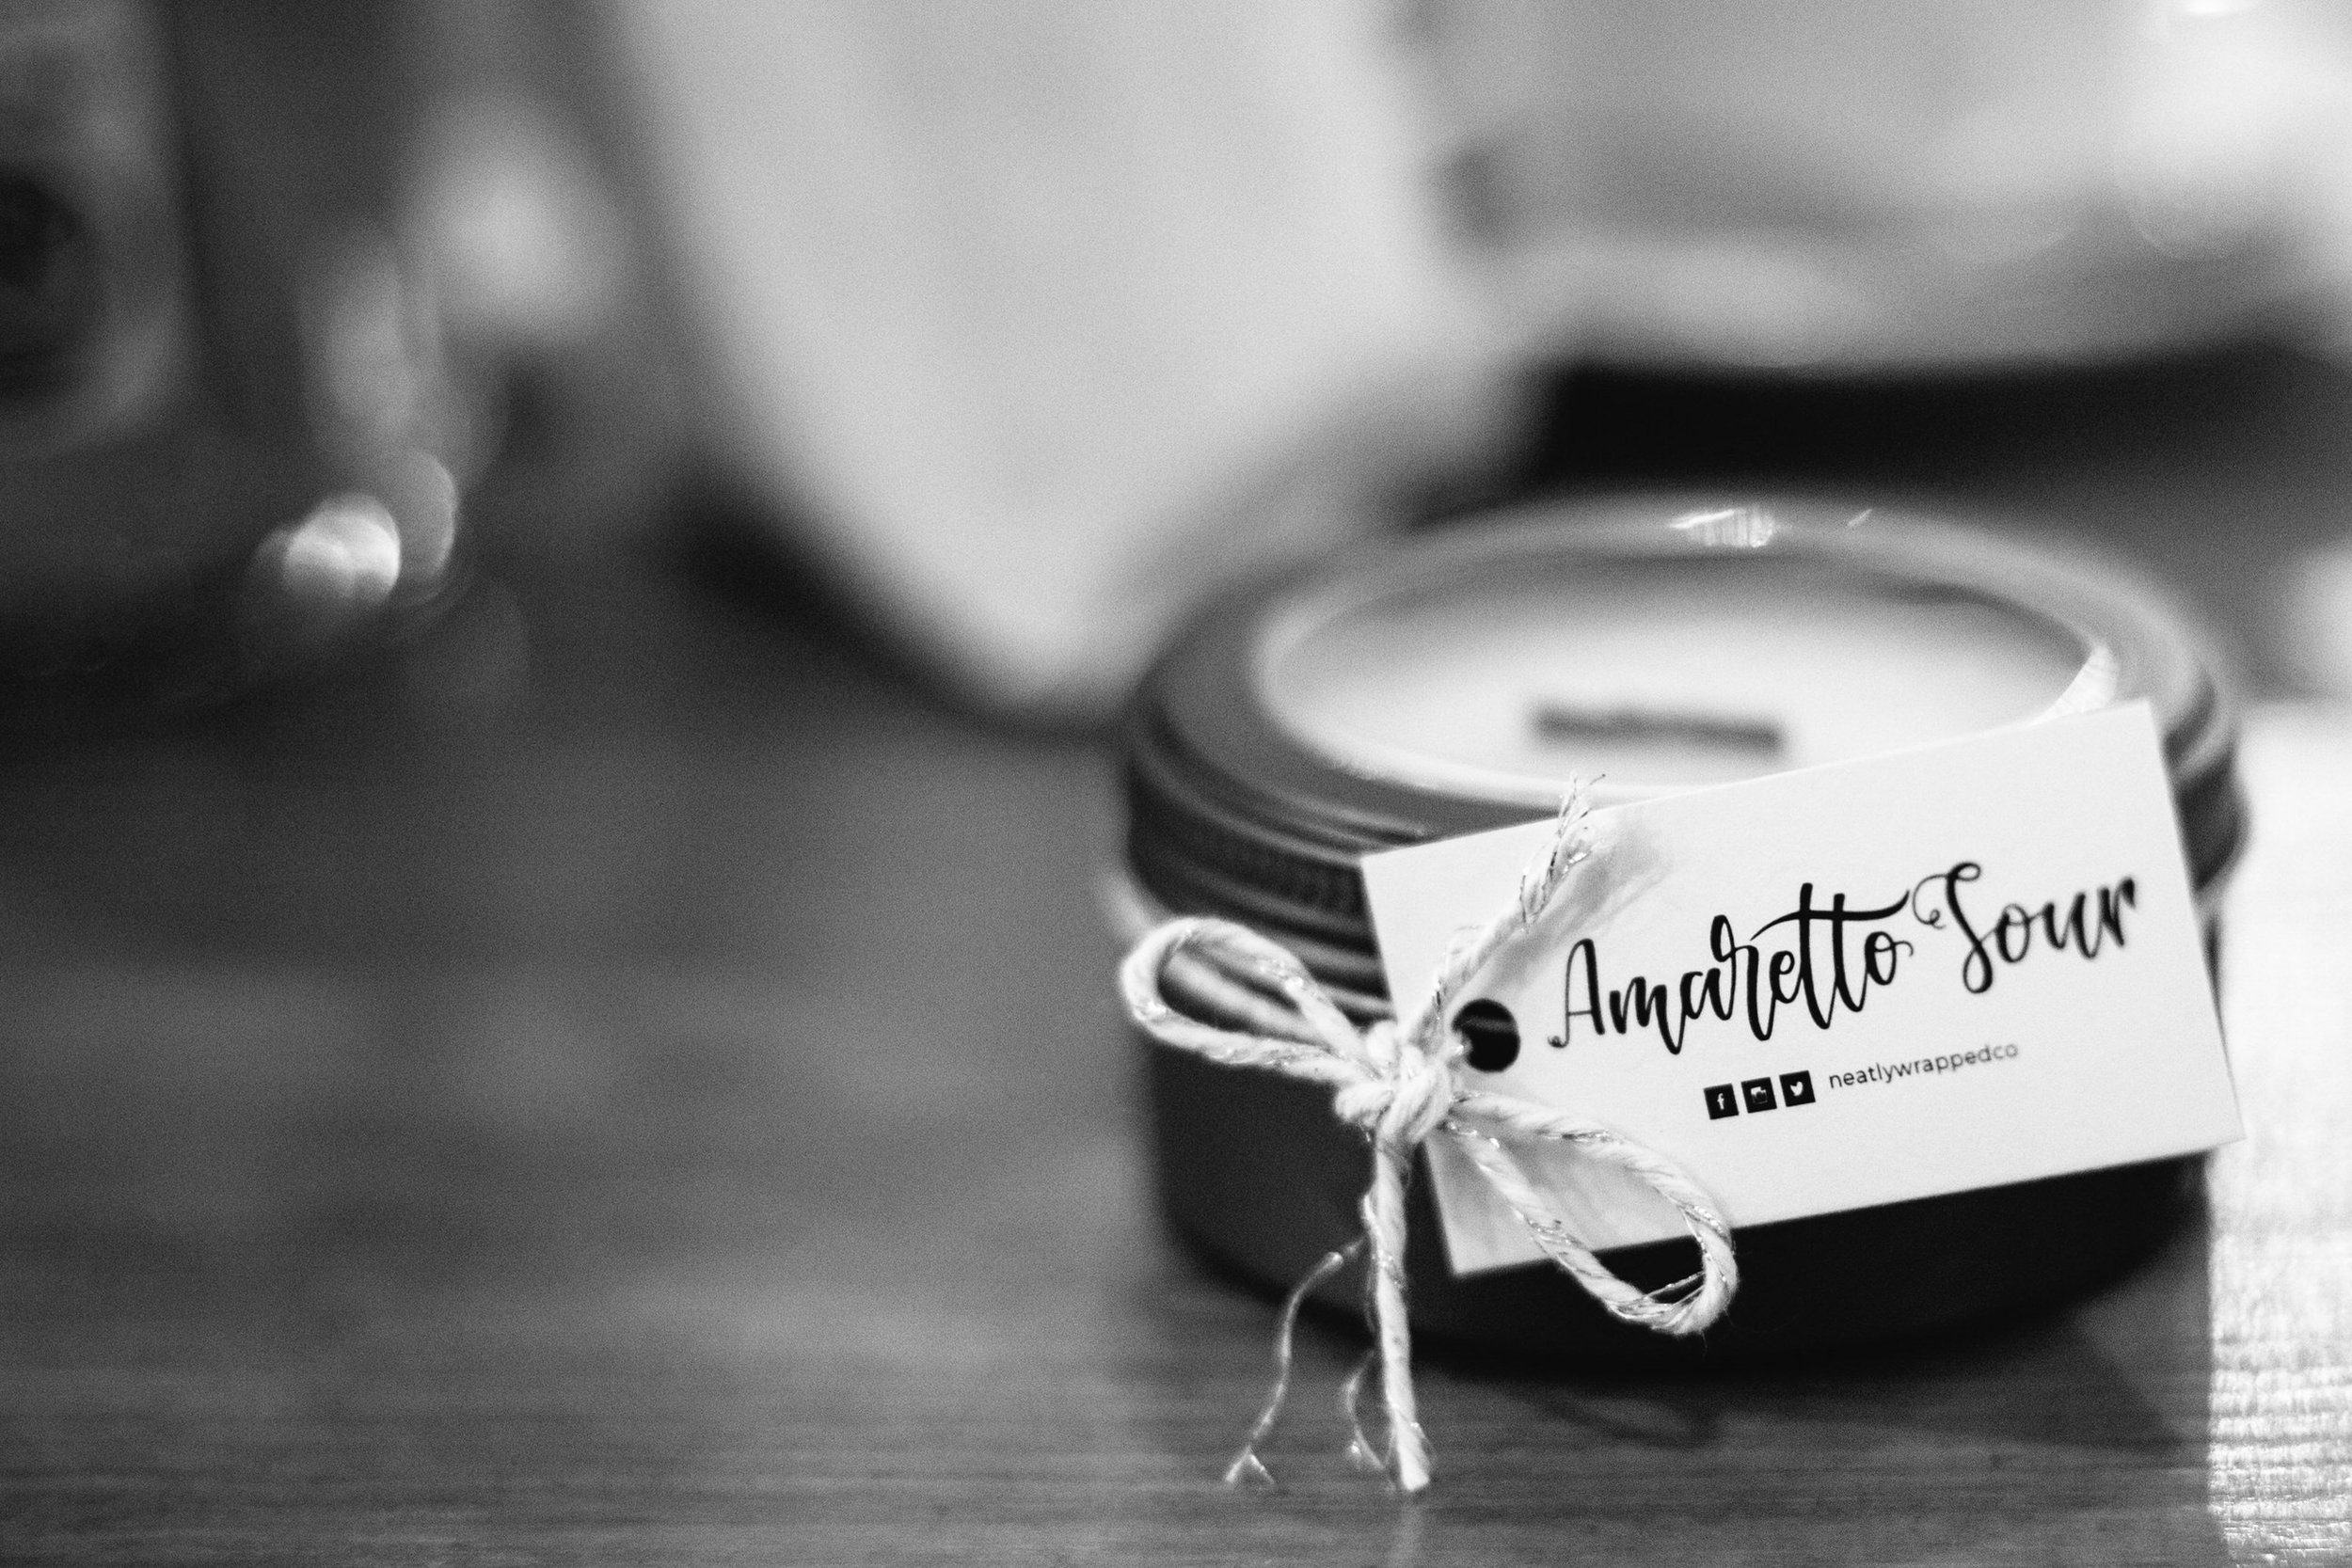 amaretto-sour-candle-drygate-alternative-glasgow-wedding-neatly-wrapped-caro-weiss-favours